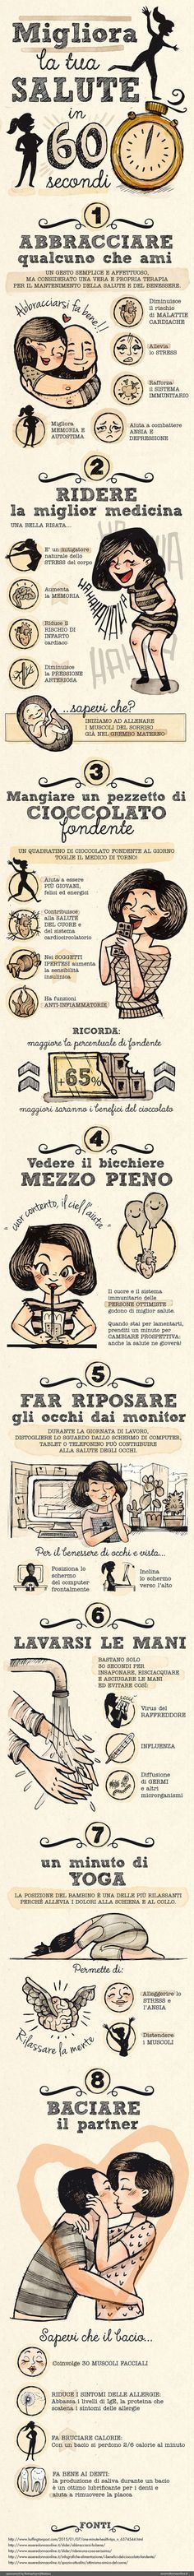 MIGLIORA LA TUA SALUTE IN 60 SECONDI -esseredonnaonline.it- illustrated by Alice Kle Borghi kleland.com